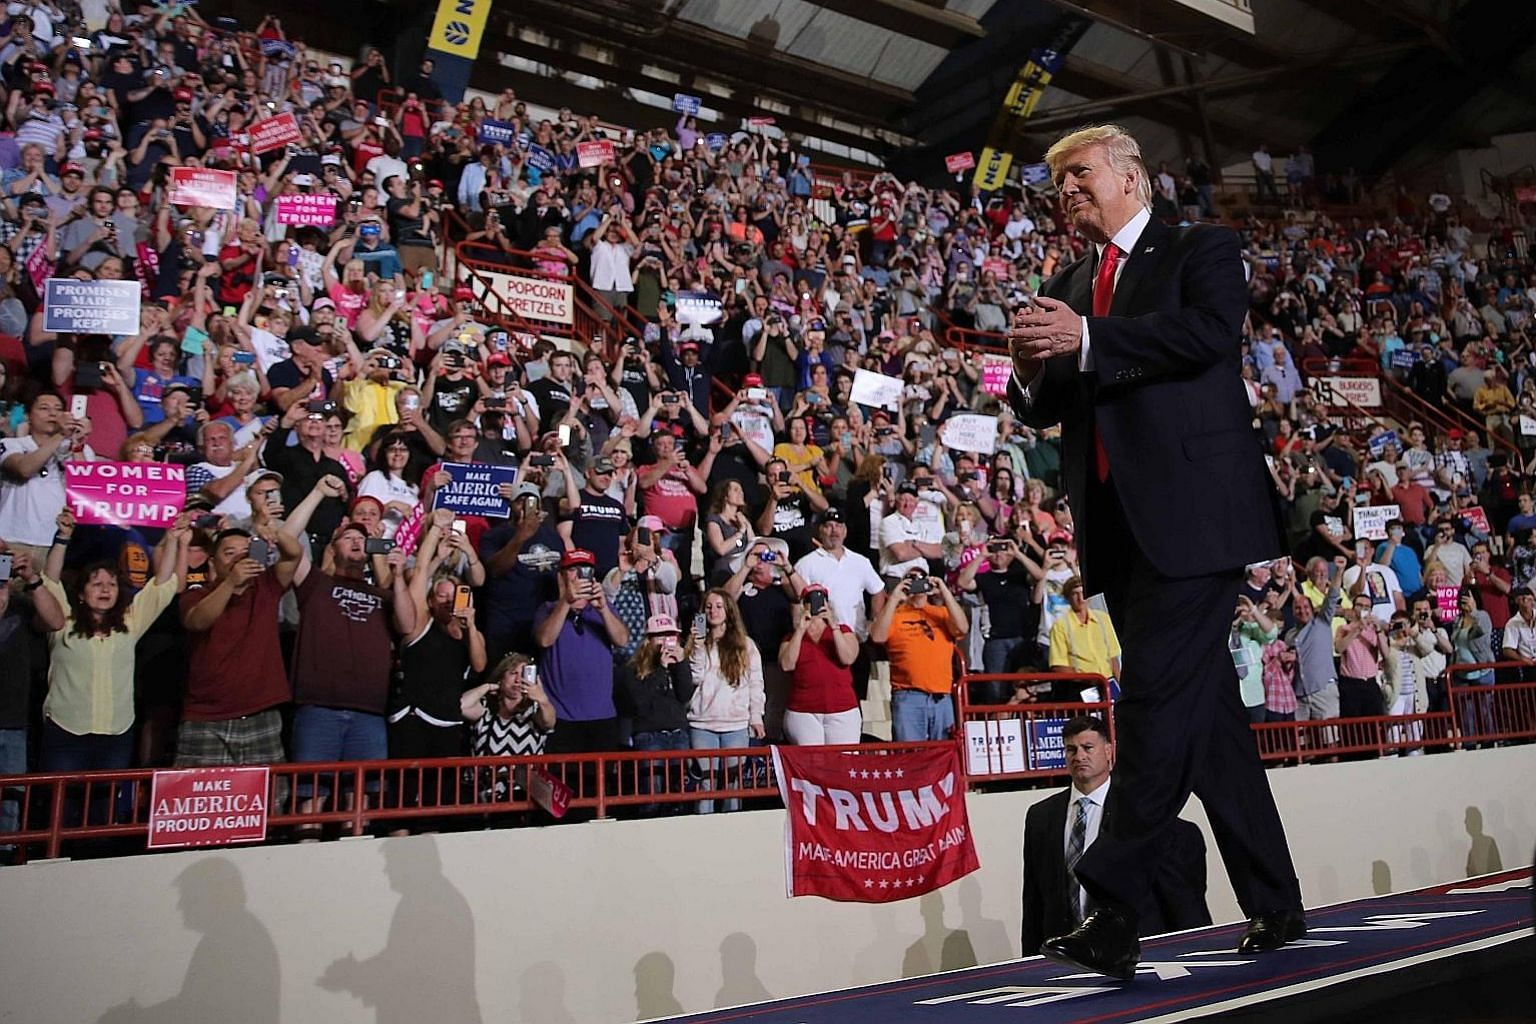 US President Donald Trump at a rally marking his first 100 days in office in Harrisburg, Pennsylvania. As of his first 100 days, Mr Trump's Gallup rating has already sunk to below 40 per cent whereas former president Barack Obama's was at 62 per cent